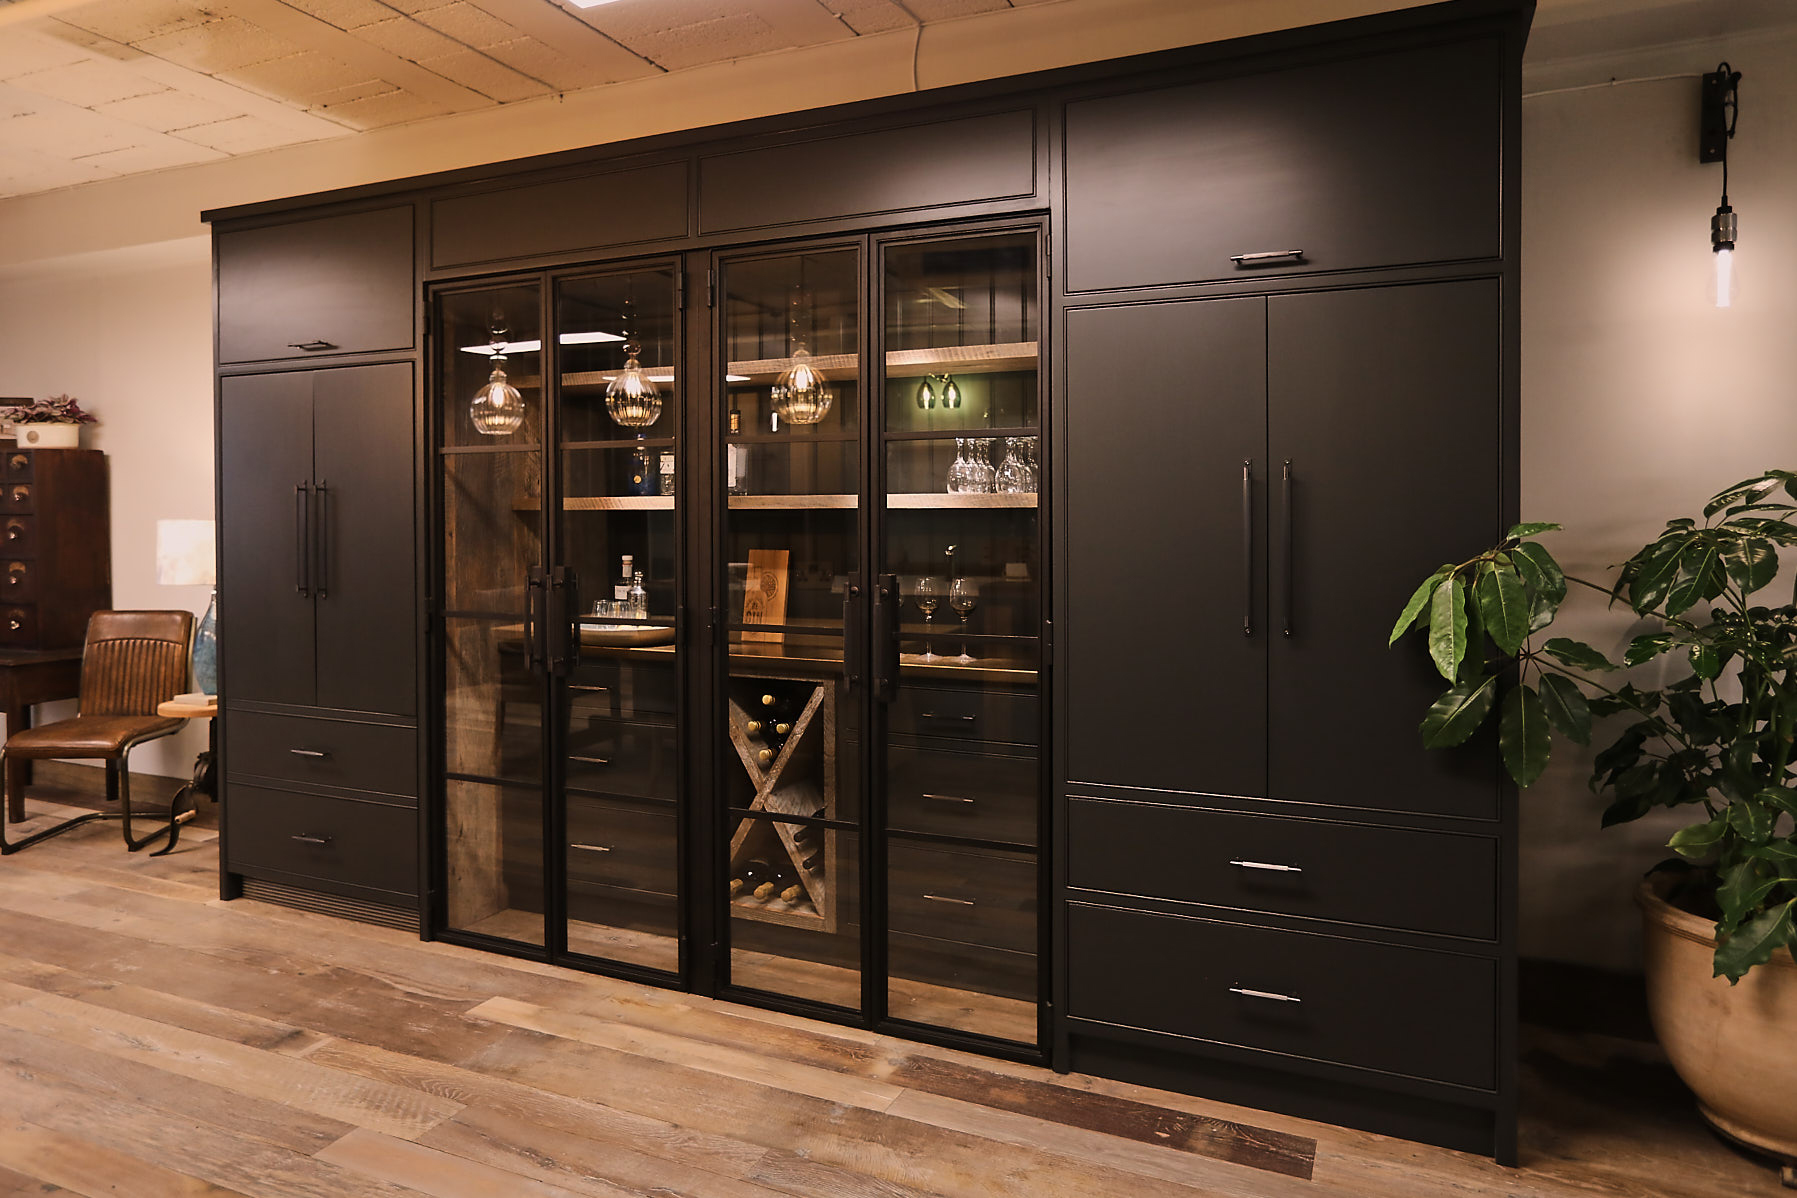 Tall kitchen cabinets painted in lamp black with crittall style doors